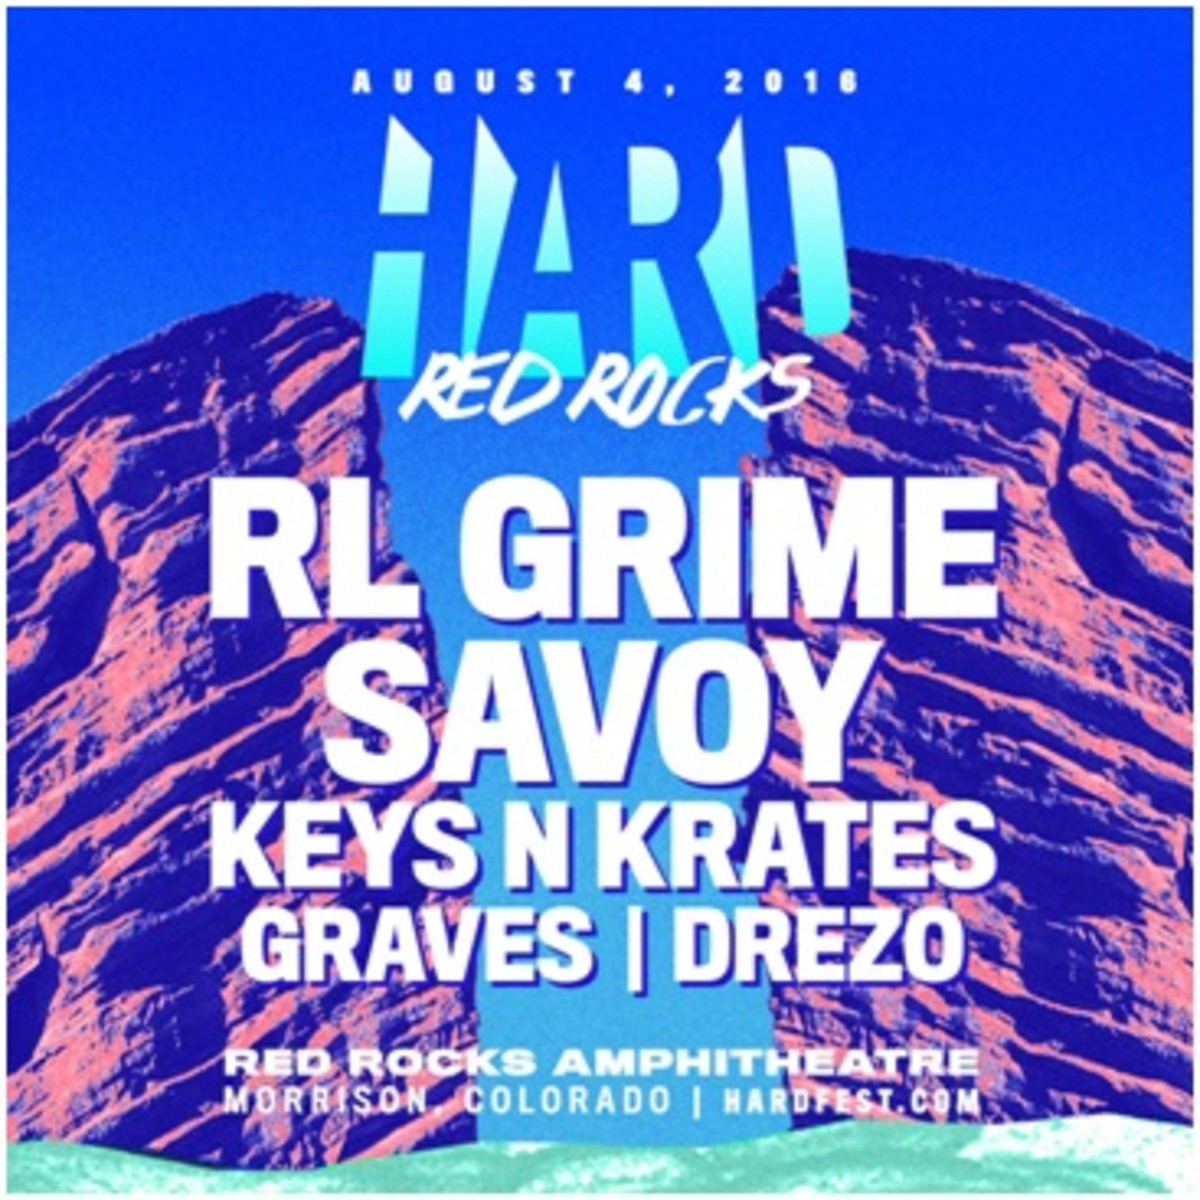 HARD Red Rocks